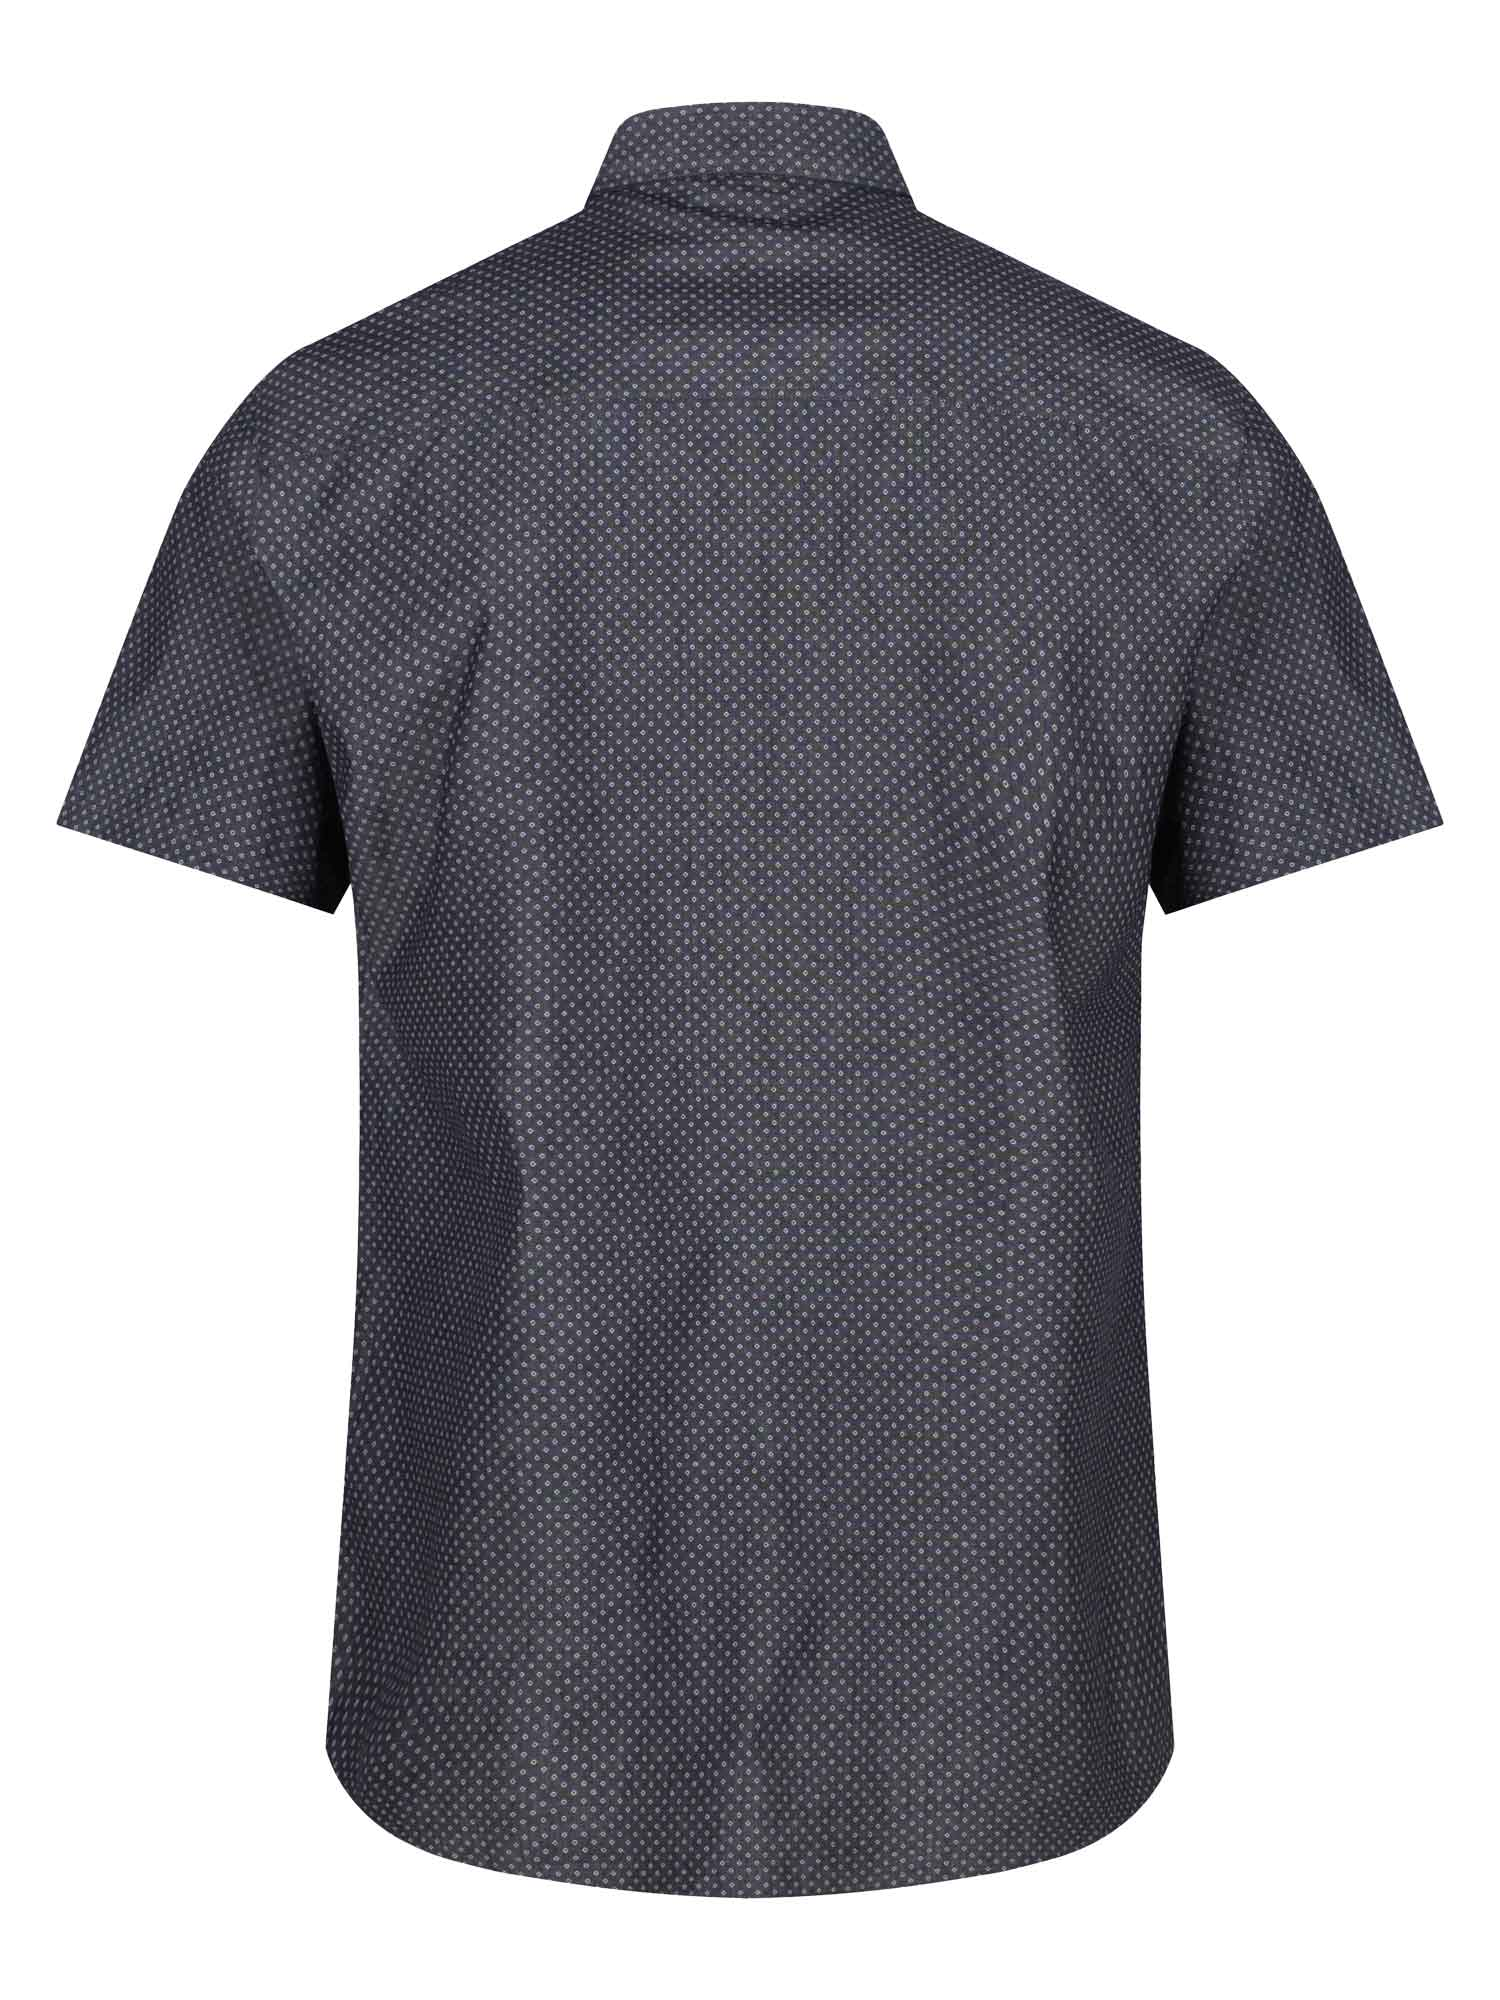 Shop for Men's Designer Shirts at REVOLVE CLOTHING. Find stylish Long & Short Sleeve Shirts, Flannel Shirts, Button Down Shirts & more from top fashion labels!